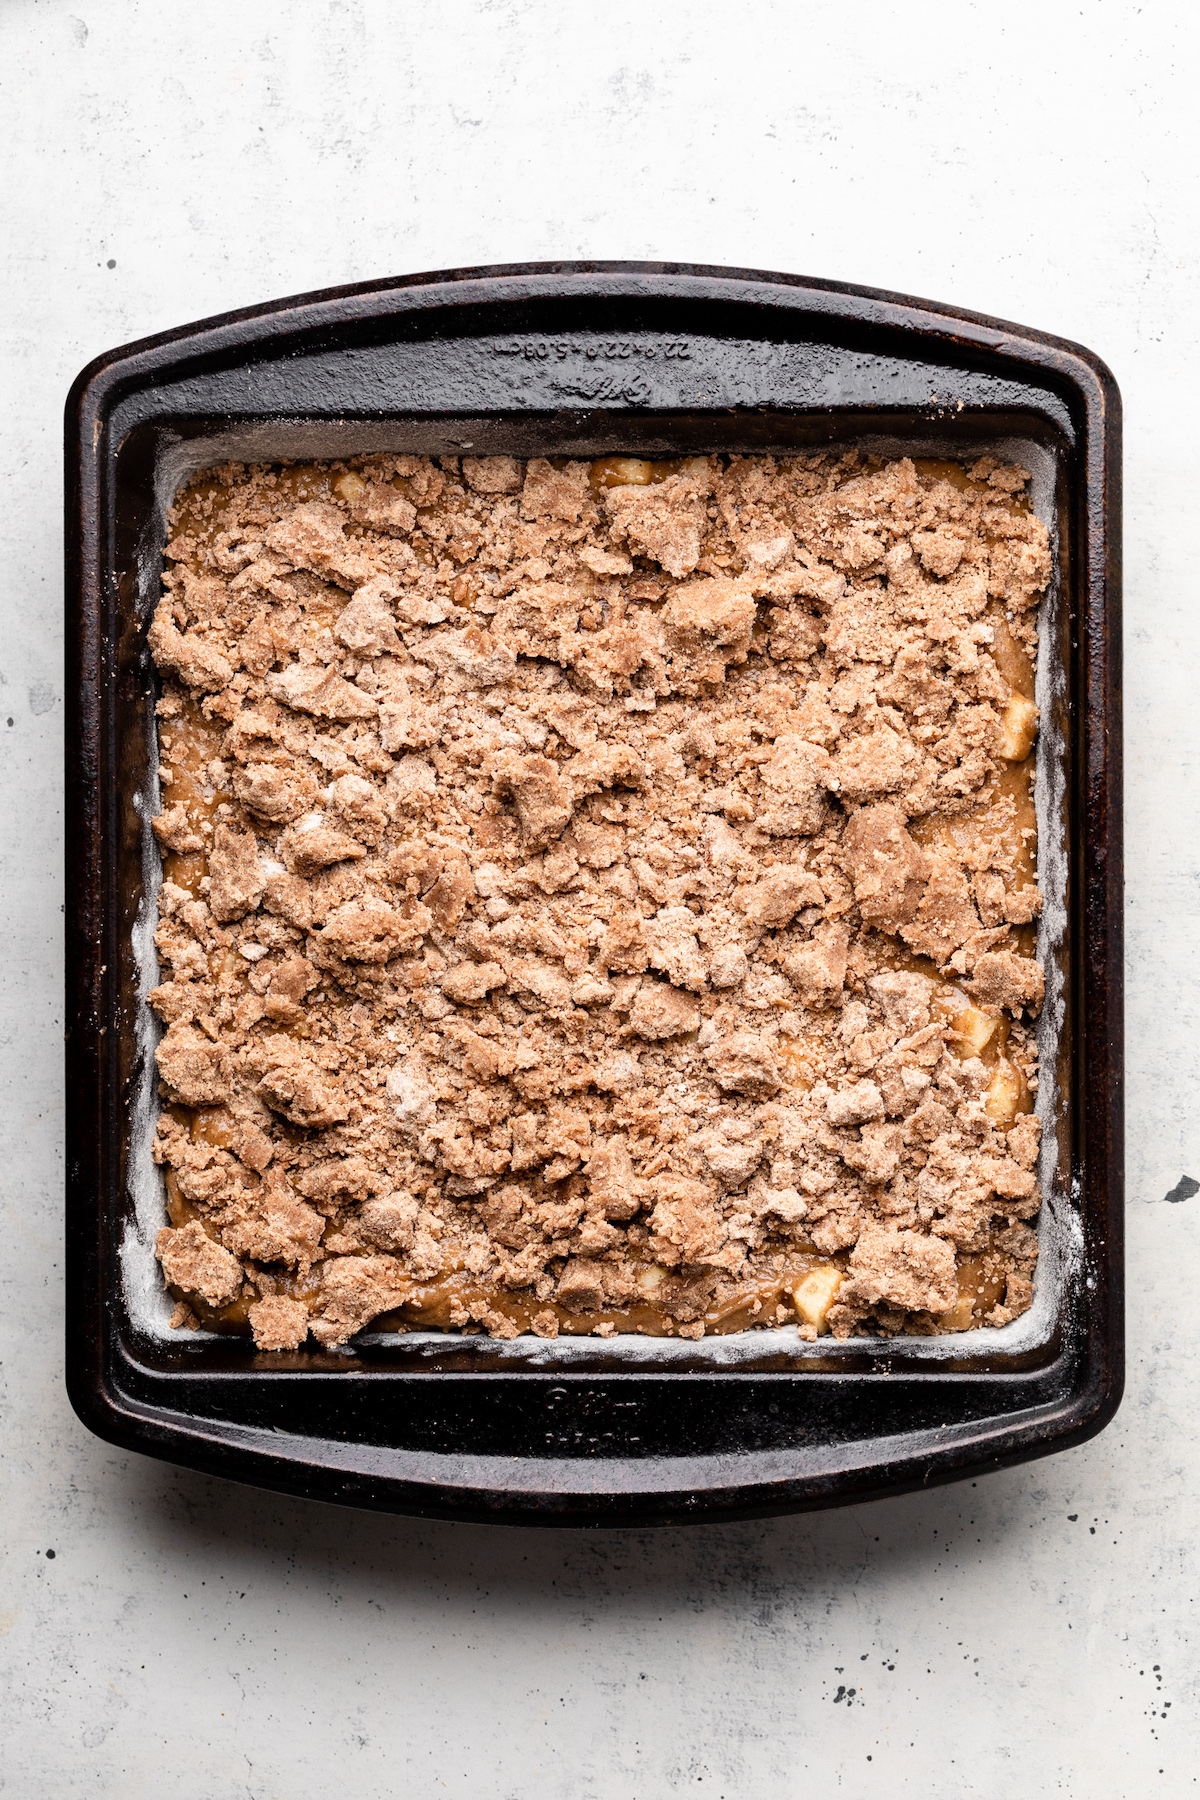 Coffee cake batter in a dark, square baking dish, topped with crumble topping.